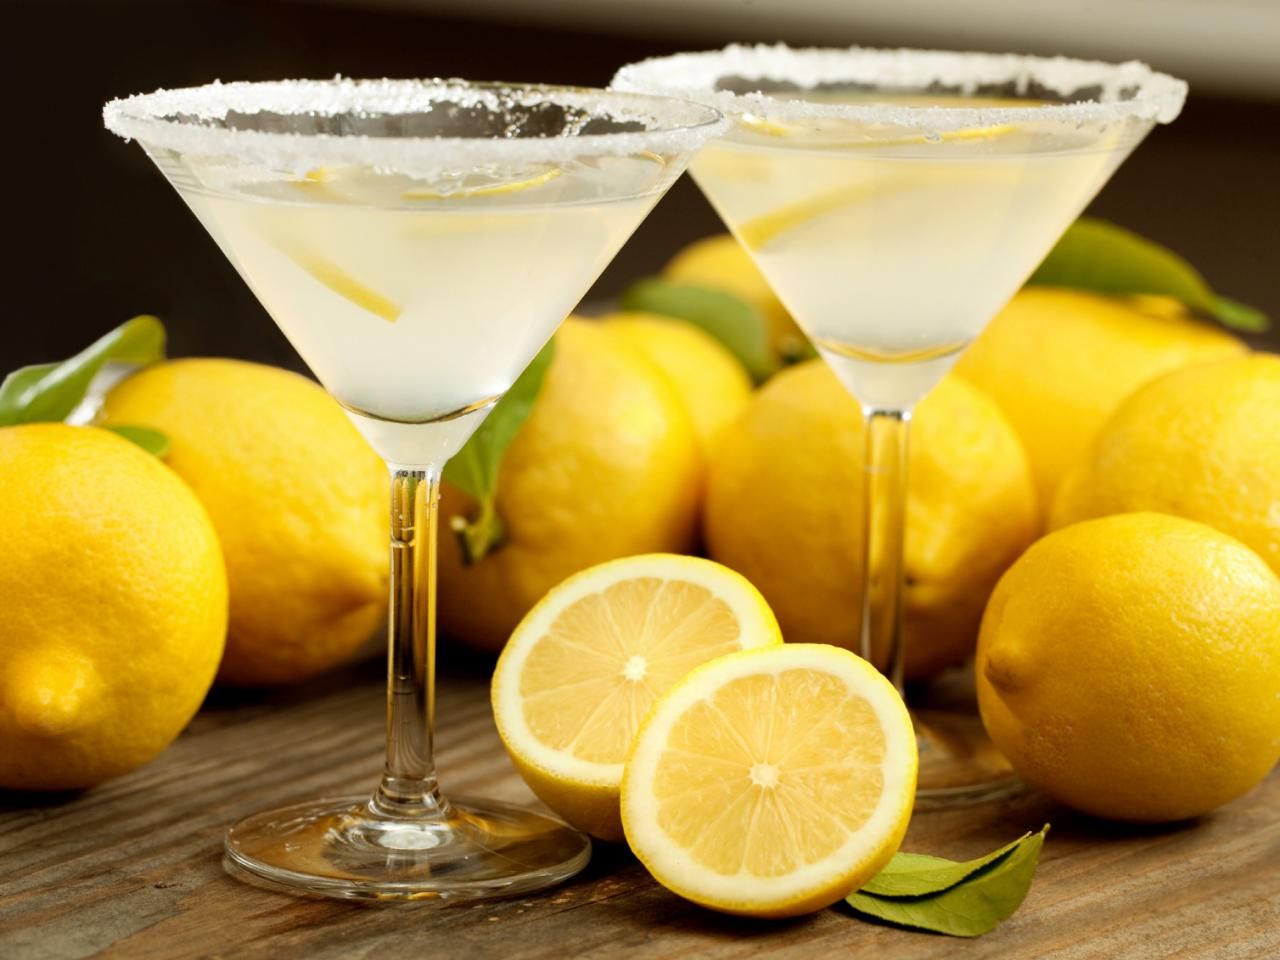 How Much Lemon Juice To Drink For Weight Loss